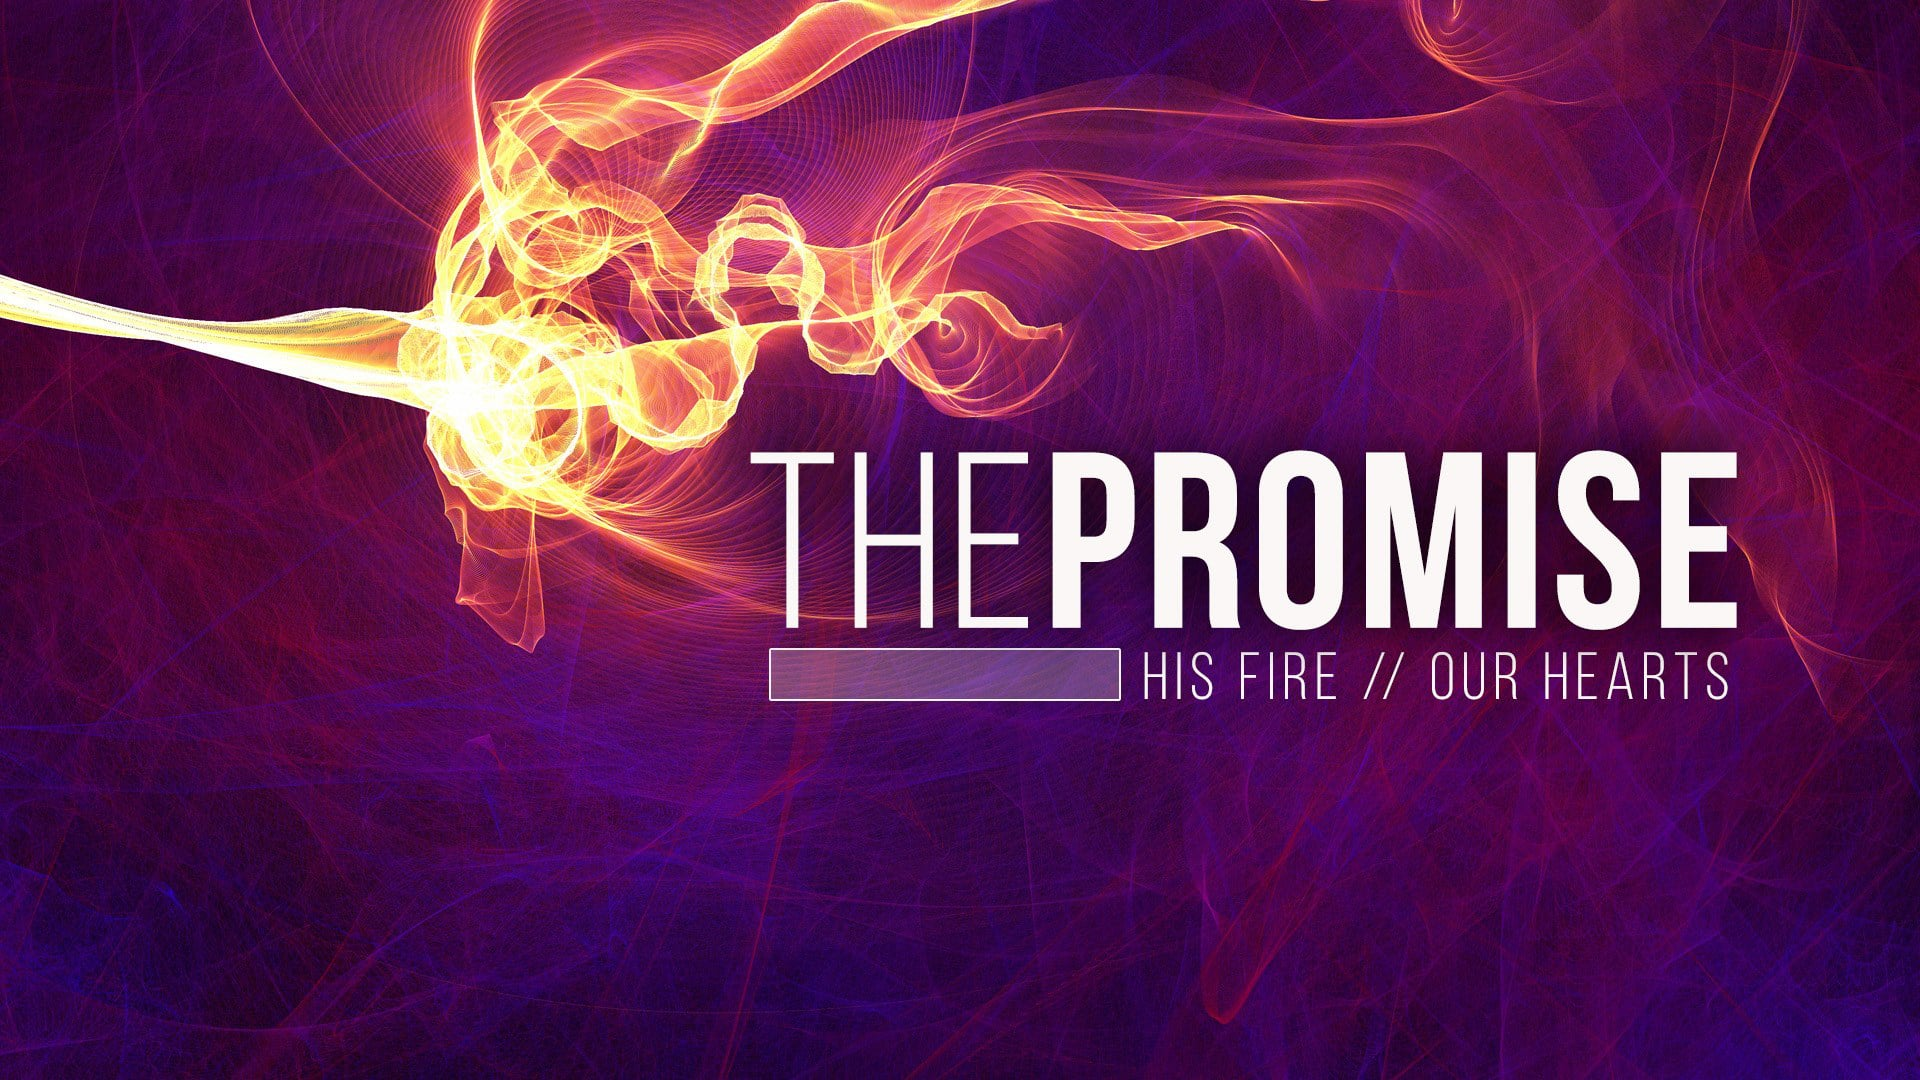 The Promise - Part 2